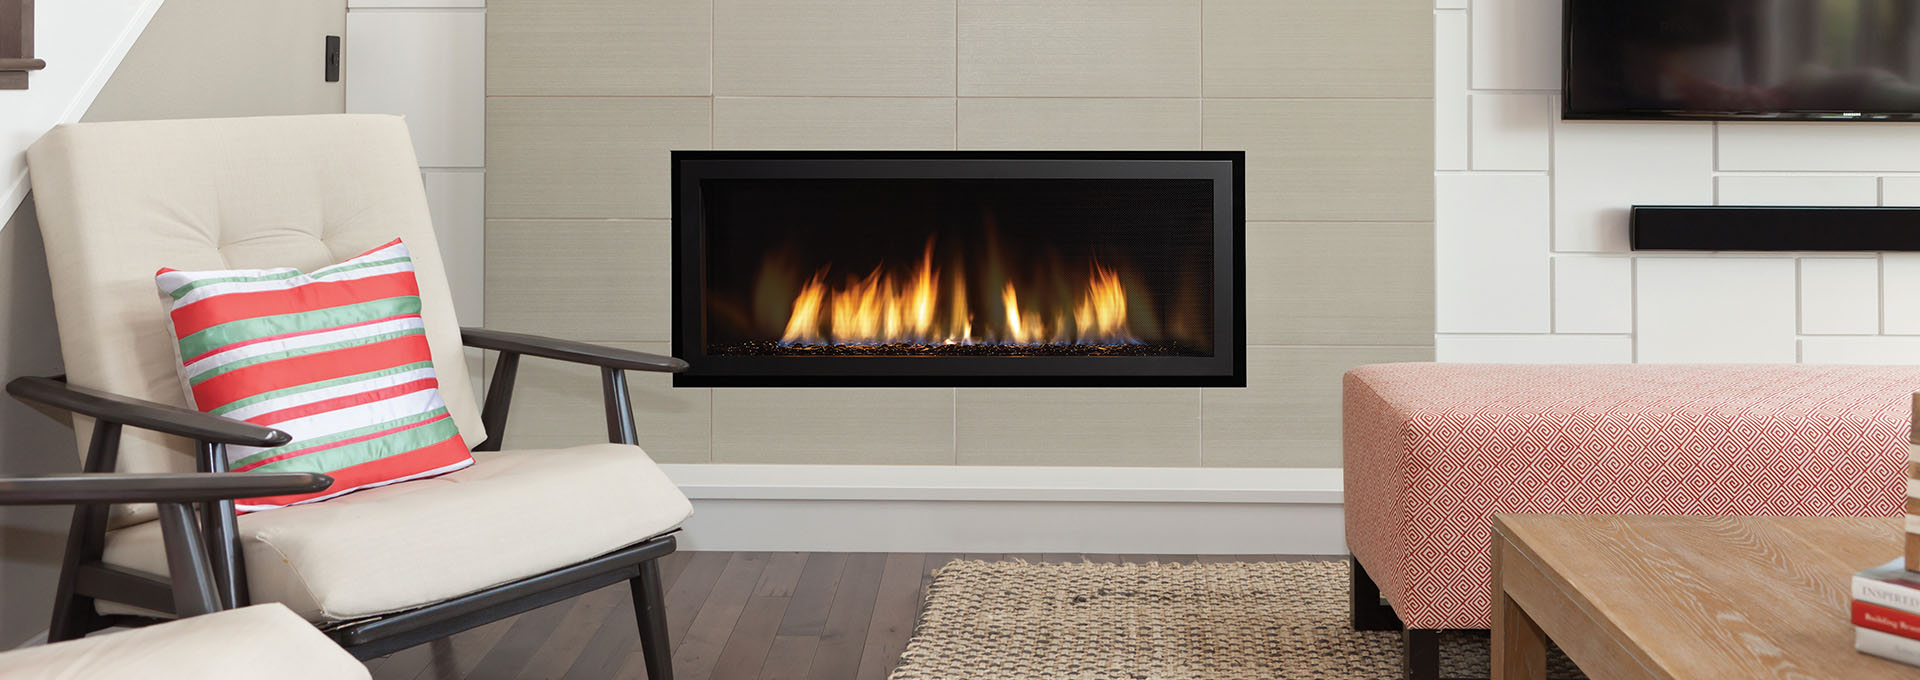 driftwood valor examples installation fireplace bronze gas products series linear